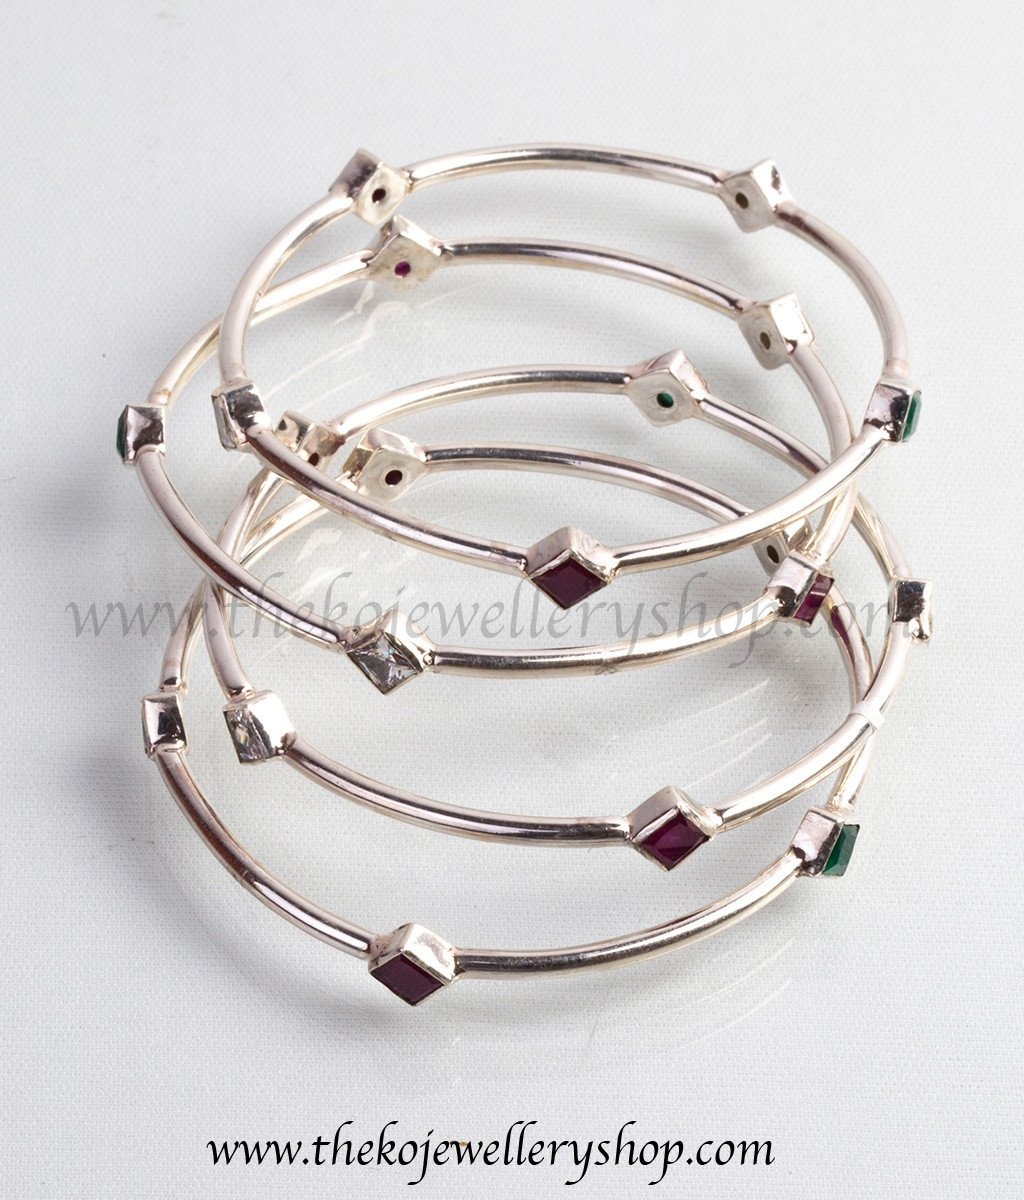 silver bangles 925 sterling silver diamond shapes on bangles for women ... glrodjc